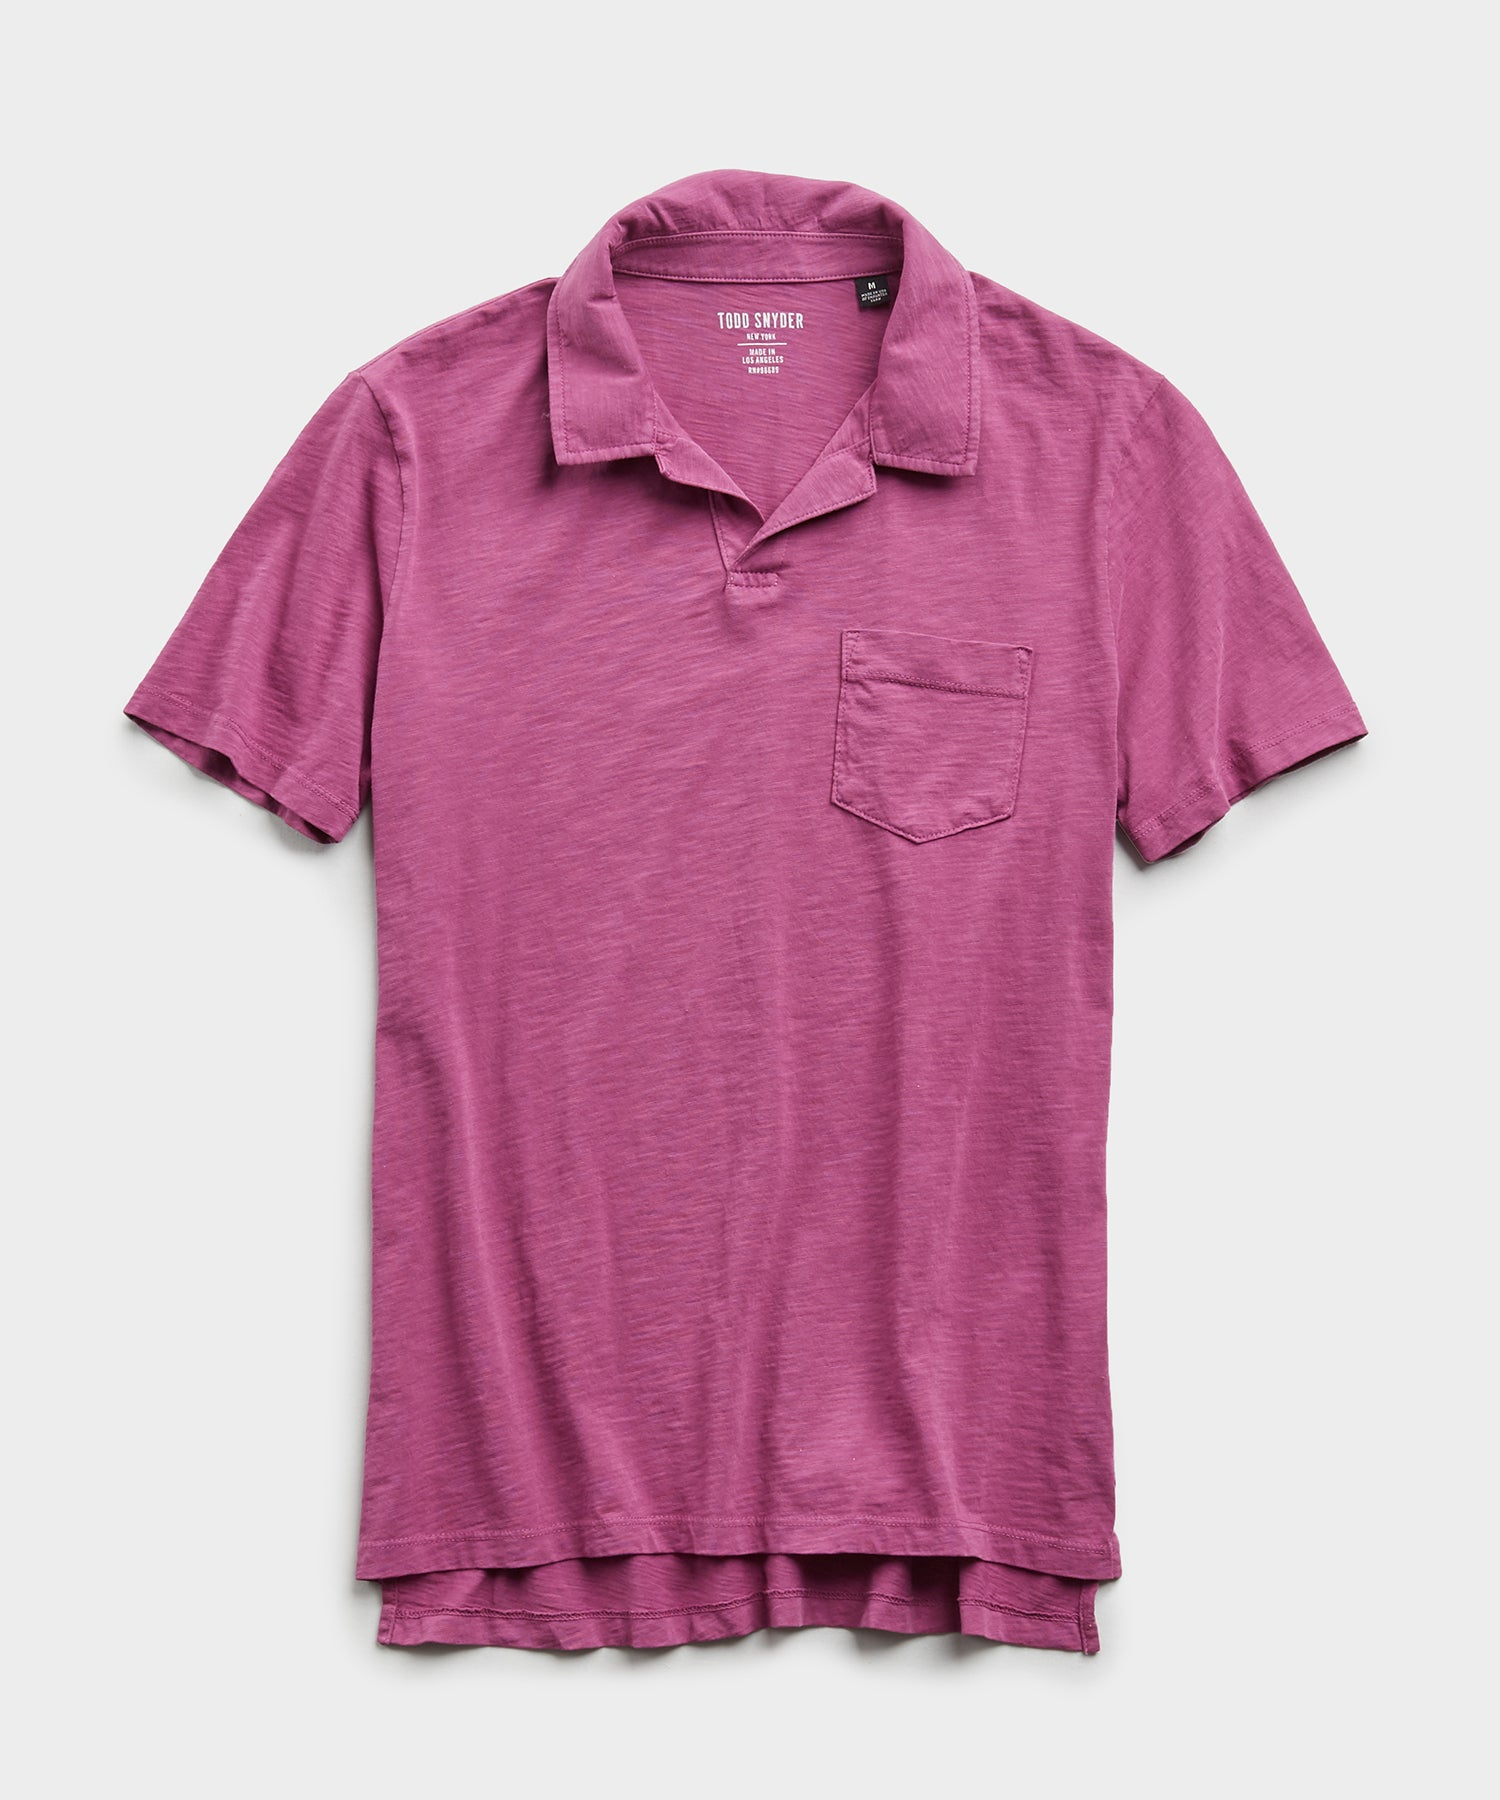 Made in L.A. Slub Jersey Montauk Polo in Magenta Mist